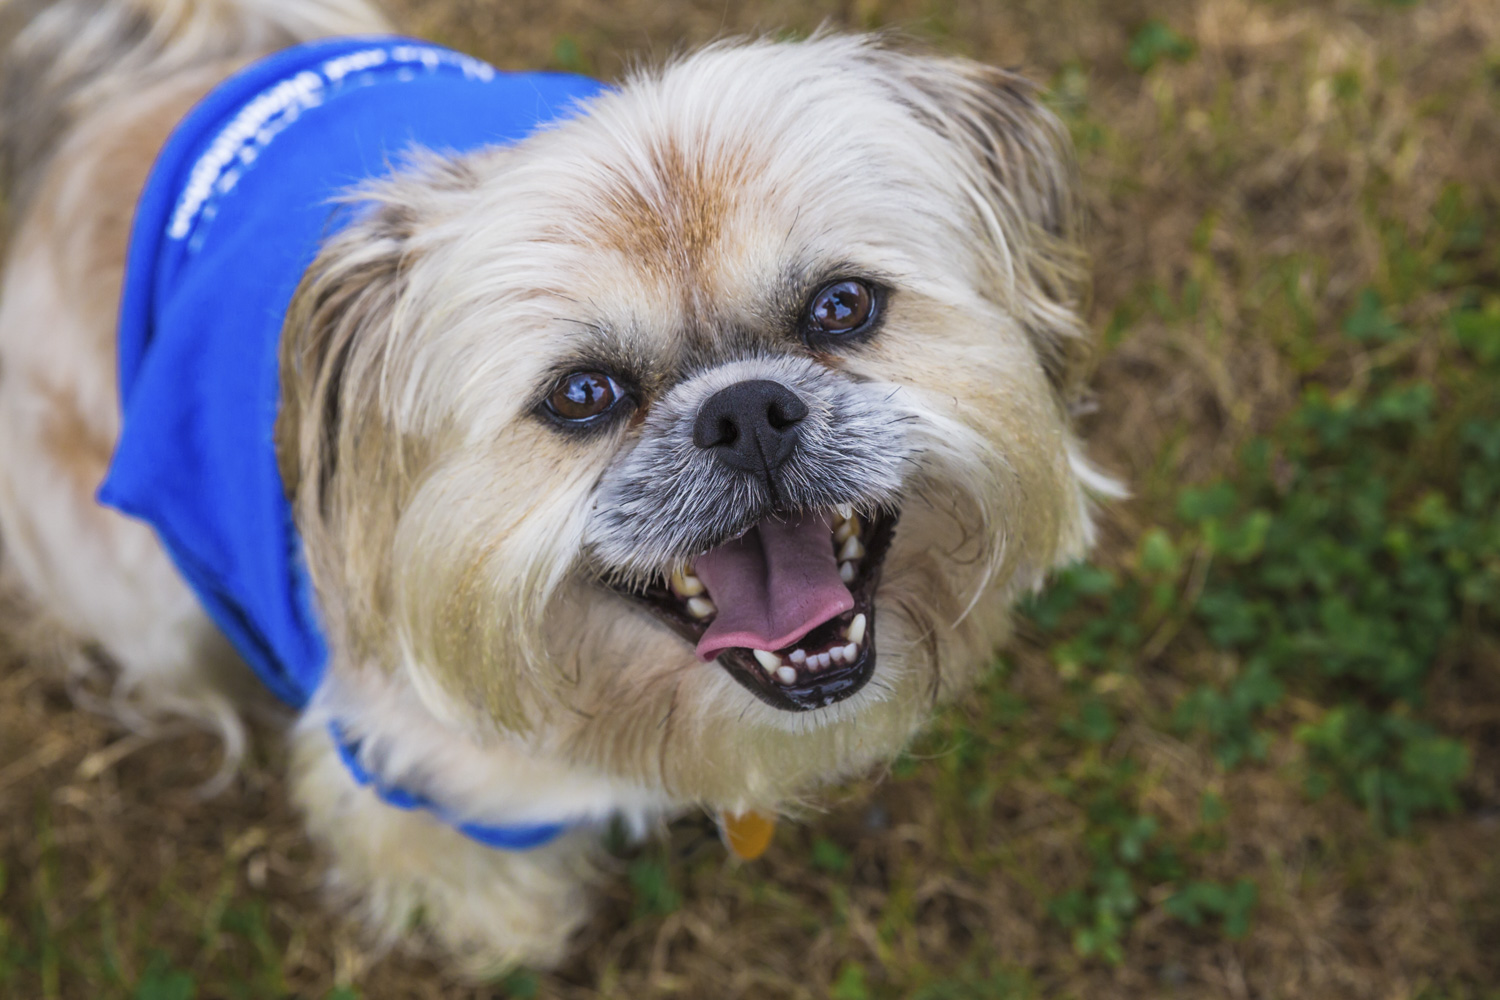 <p>Meet, Elvis! Elvis is a 5-year-old Shih Tzu who is living the dream here in Seattle. He loves people, especially kids and doesn't like crow or squirrels.{&amp;nbsp;}The Seattle RUFFined Spotlight is a weekly profile of local pets living and loving life in the PNW. If you or someone you know has a pet you'd like featured, email us at hello@seattlerefined.com or tag #SeattleRUFFined and your furbaby could be the next spotlighted! (Image: Sunita Martini / Seattle Refined).</p>